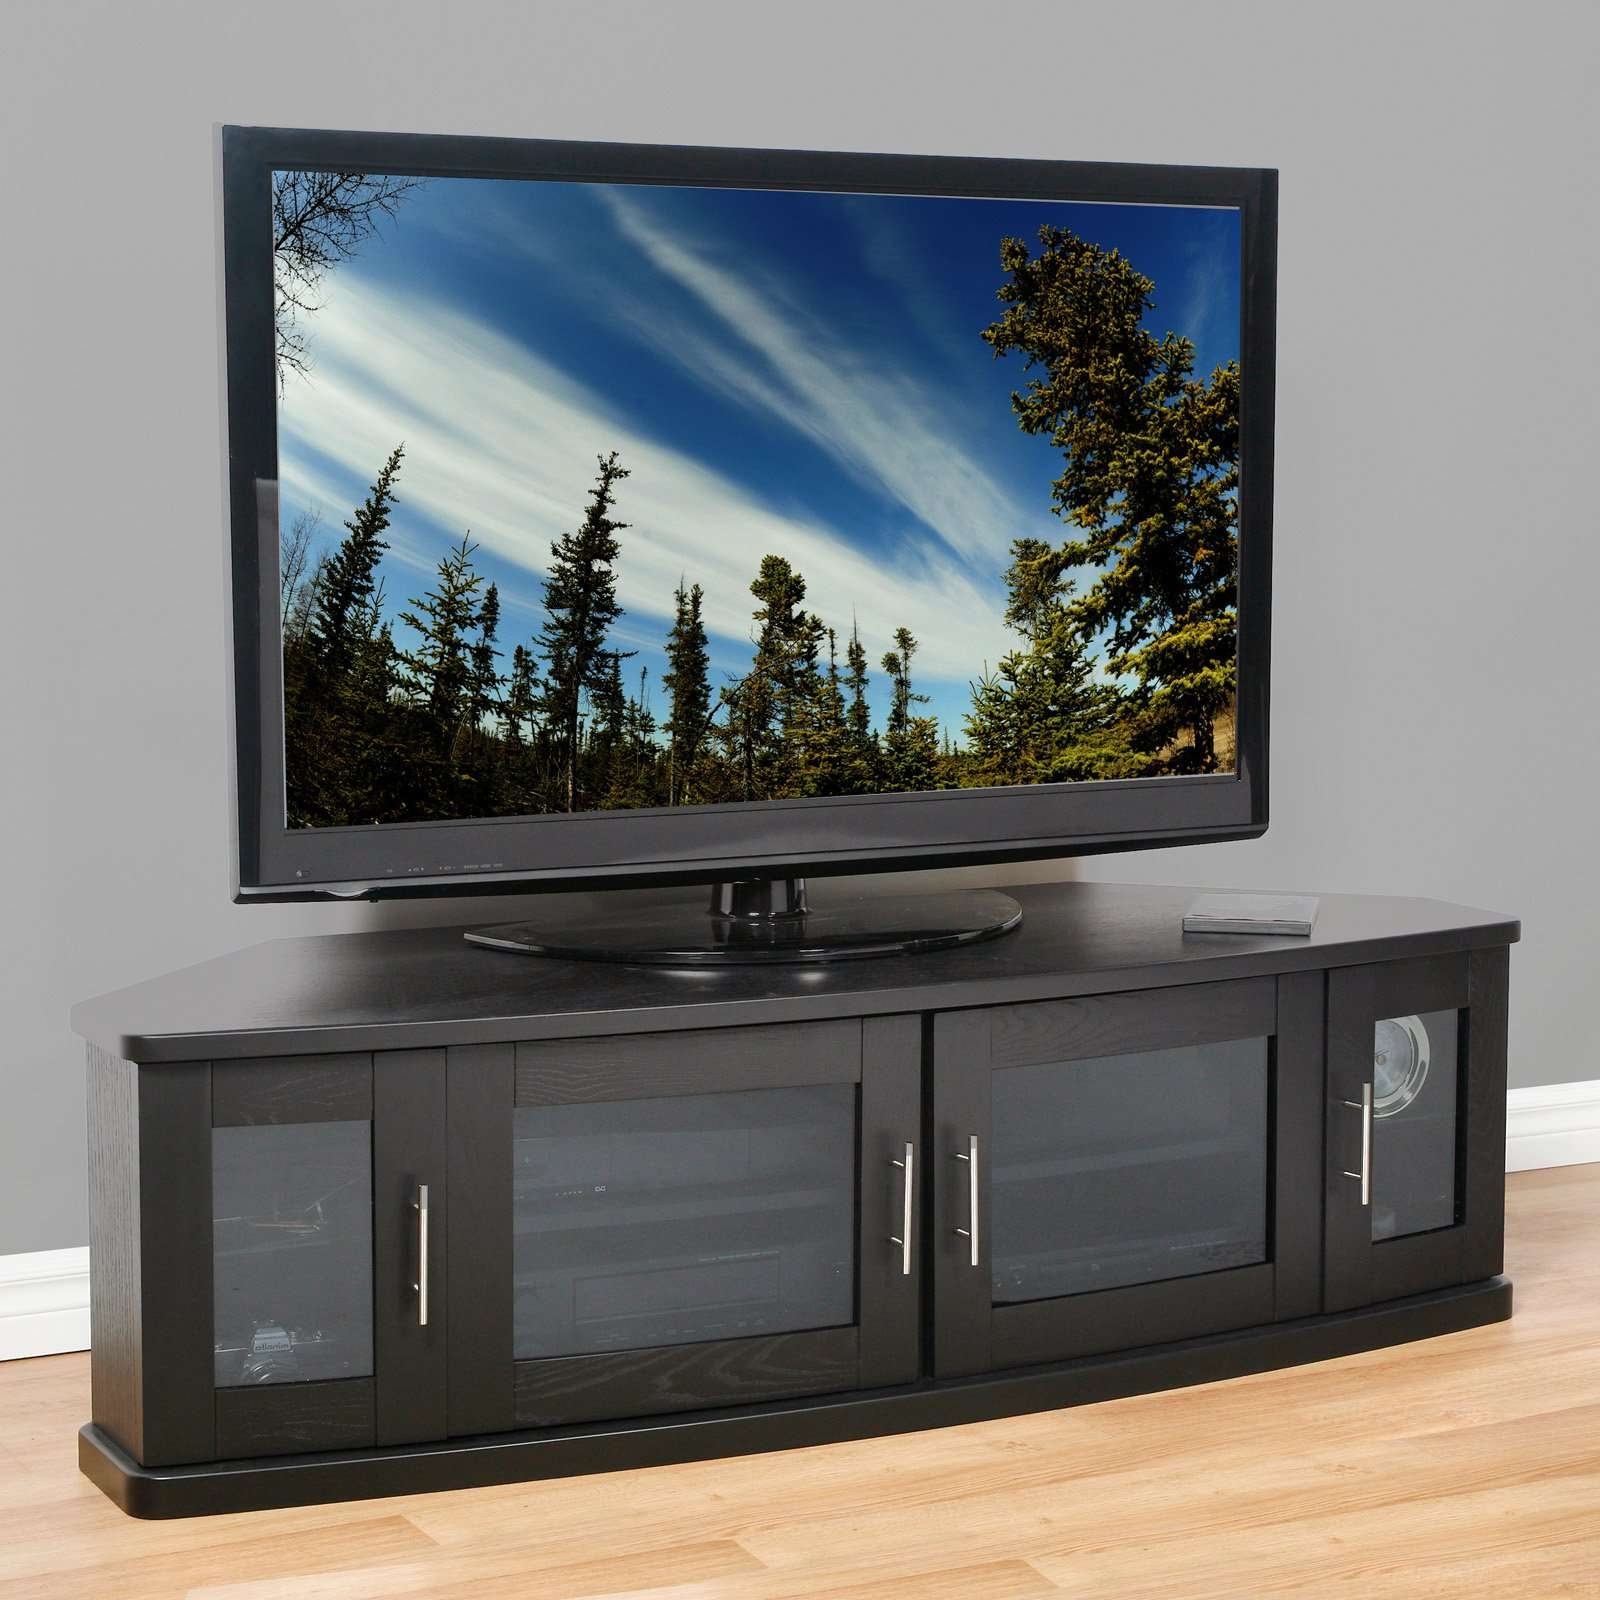 Modern Black Wooden Tv Stand With Frosted Glass Doors Of Dazzling Pertaining To Black Tv Cabinets With Doors (View 11 of 20)